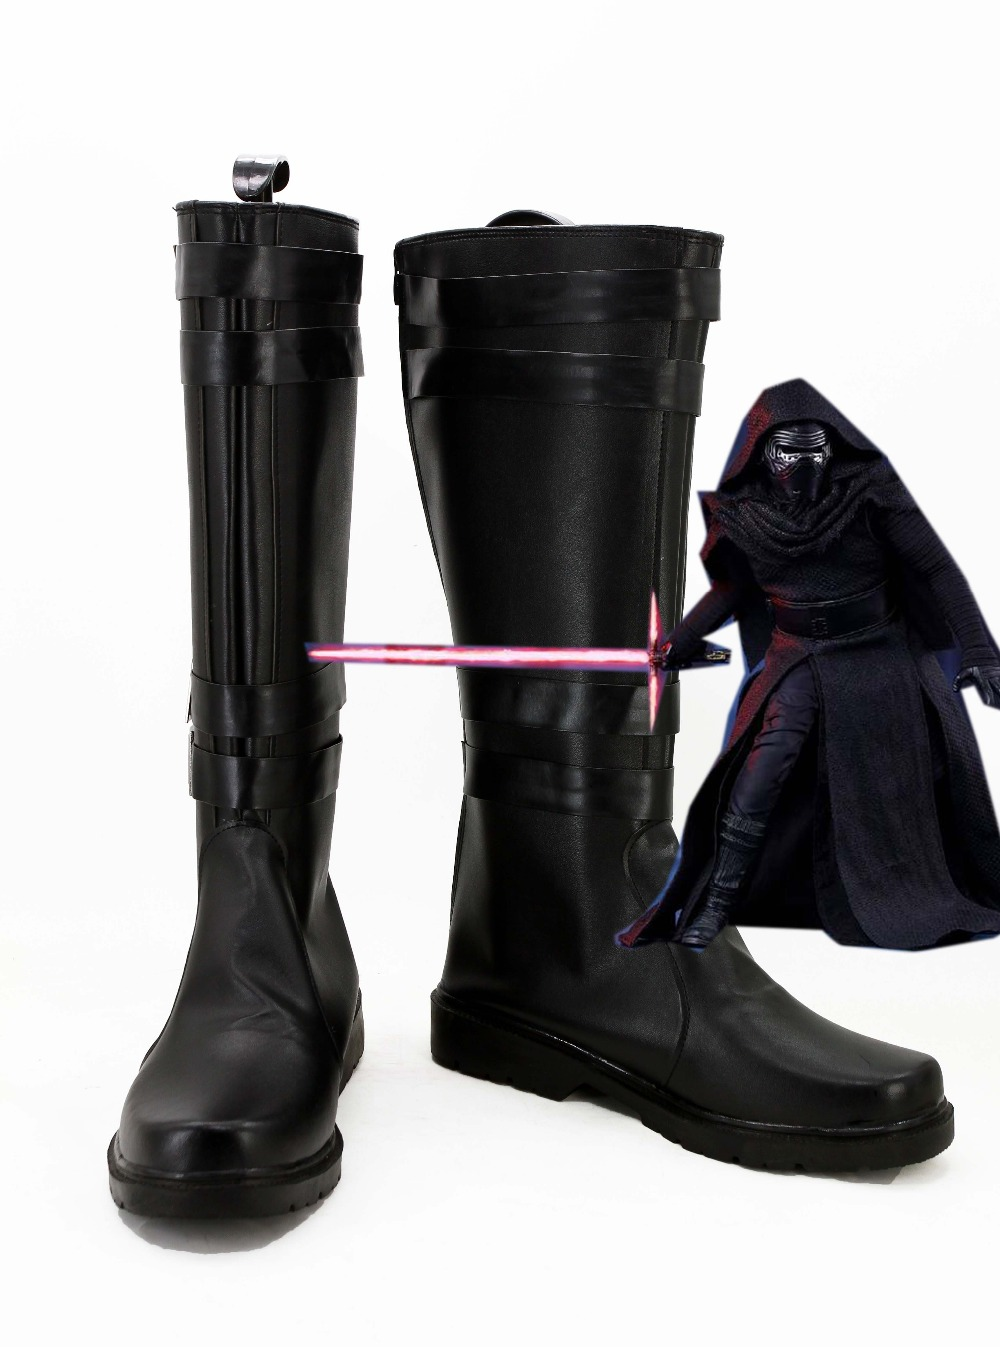 Star Cosplay Wars 7: The Force Awakens Kylo Ren Boots Shoes Costume Custom Made